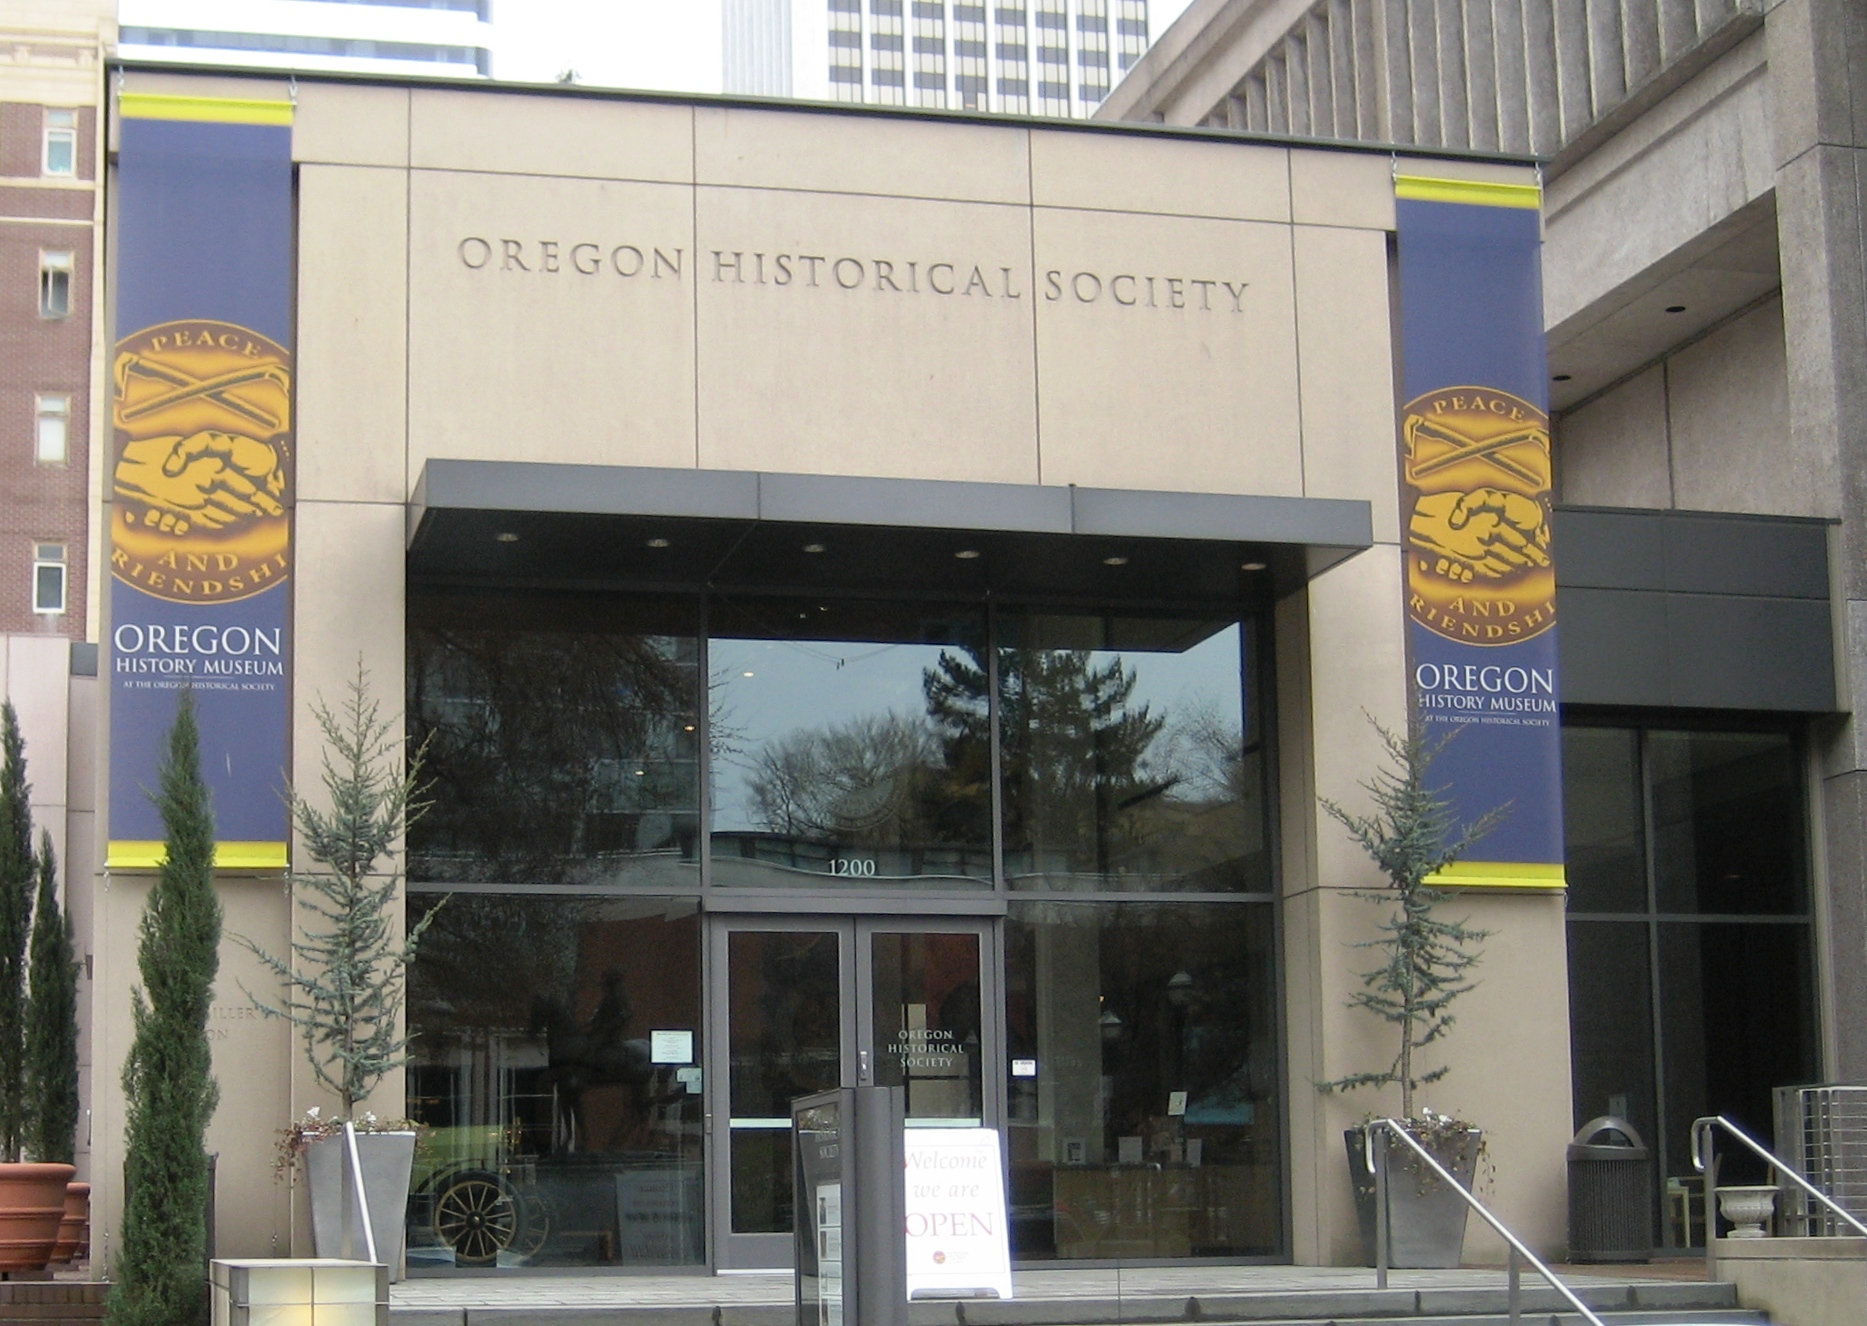 The Oregon Historical Society was established in 1898.